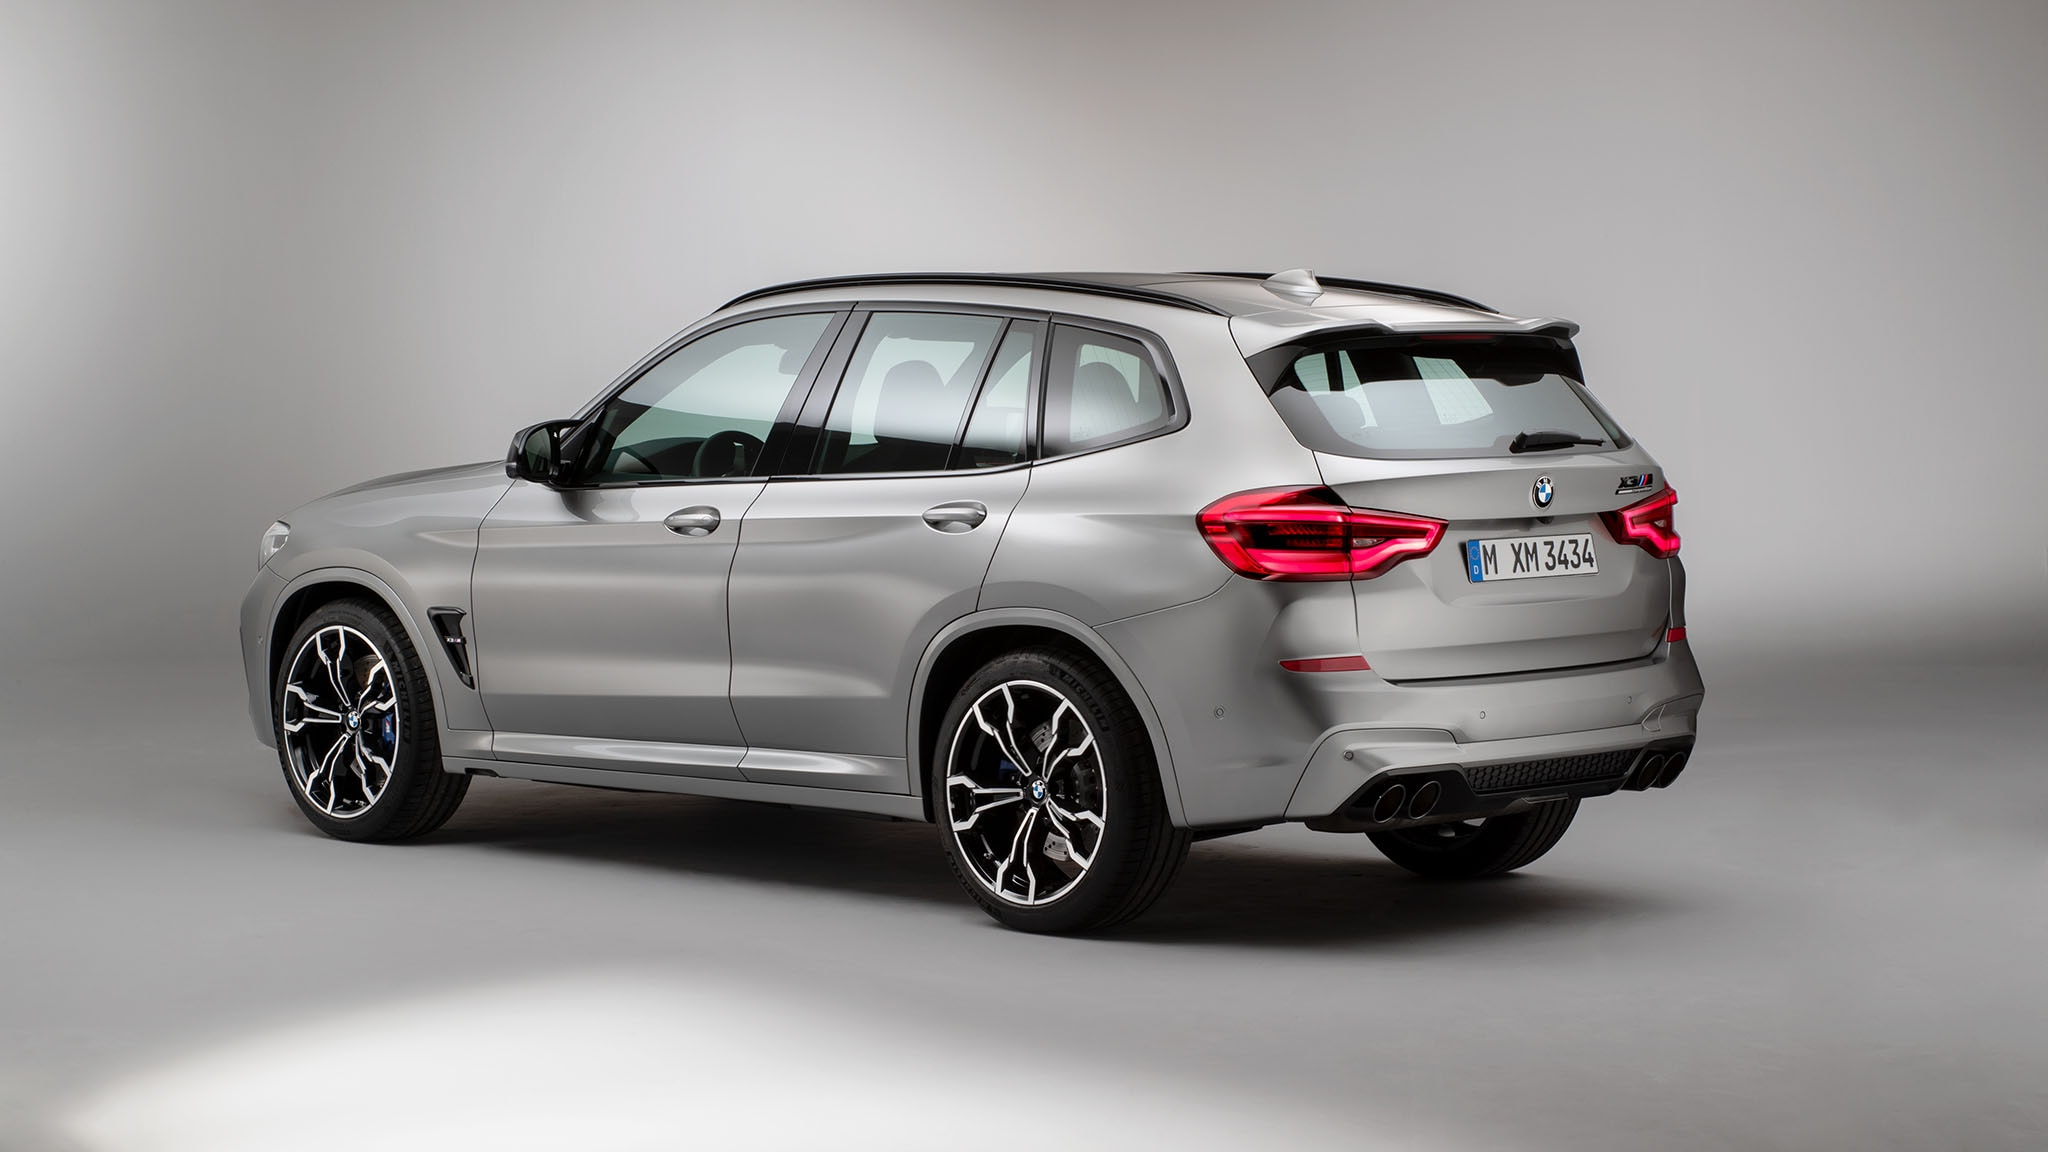 2020 Bmw X3 And X4 M 04 Motor Trend En Espanol